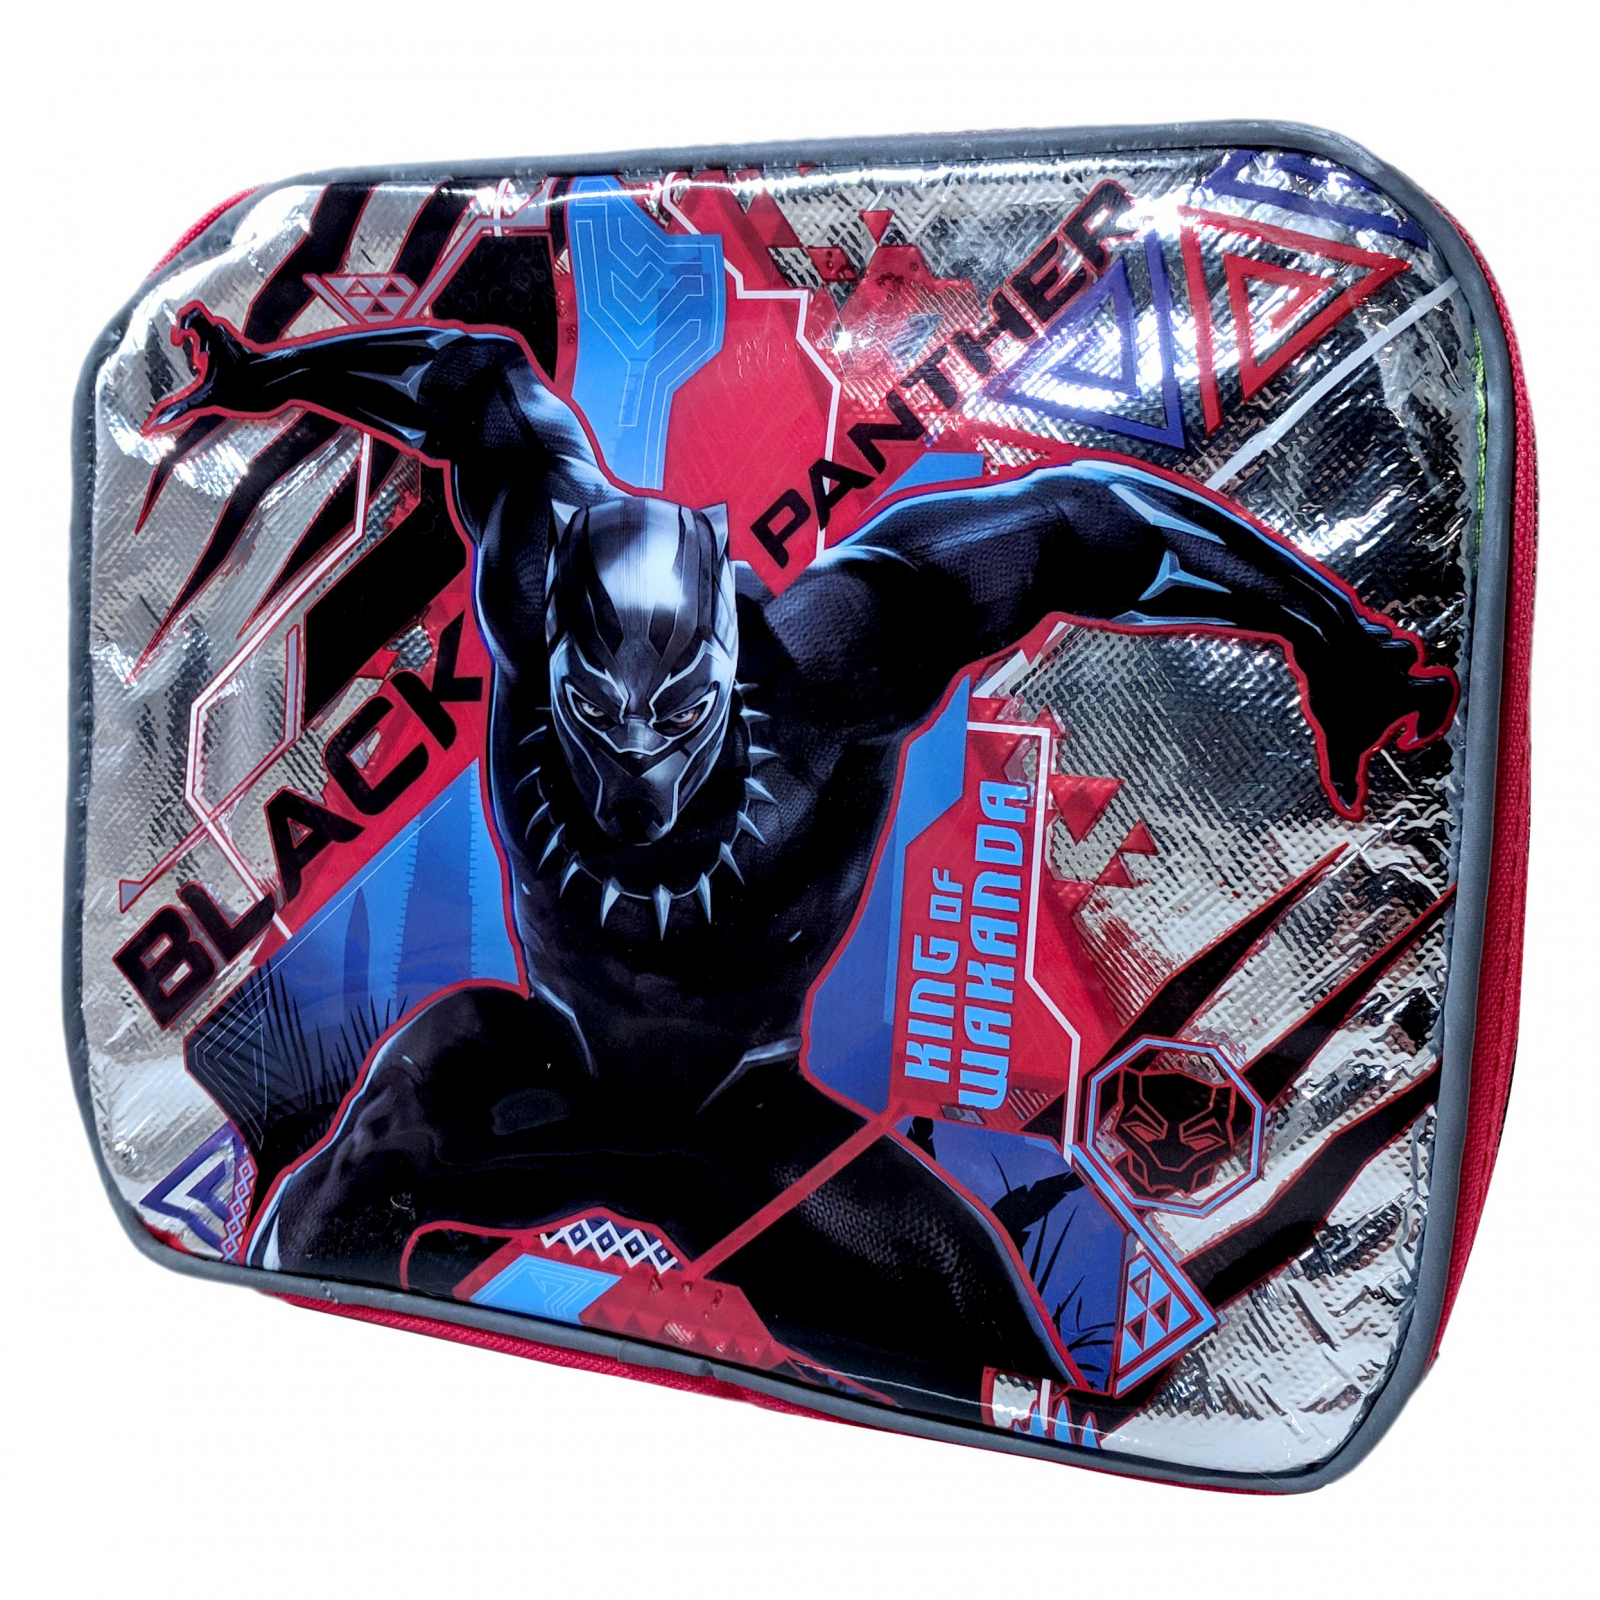 TychoTyke Reflective Black Panther Rectangle Lunch Box Bag